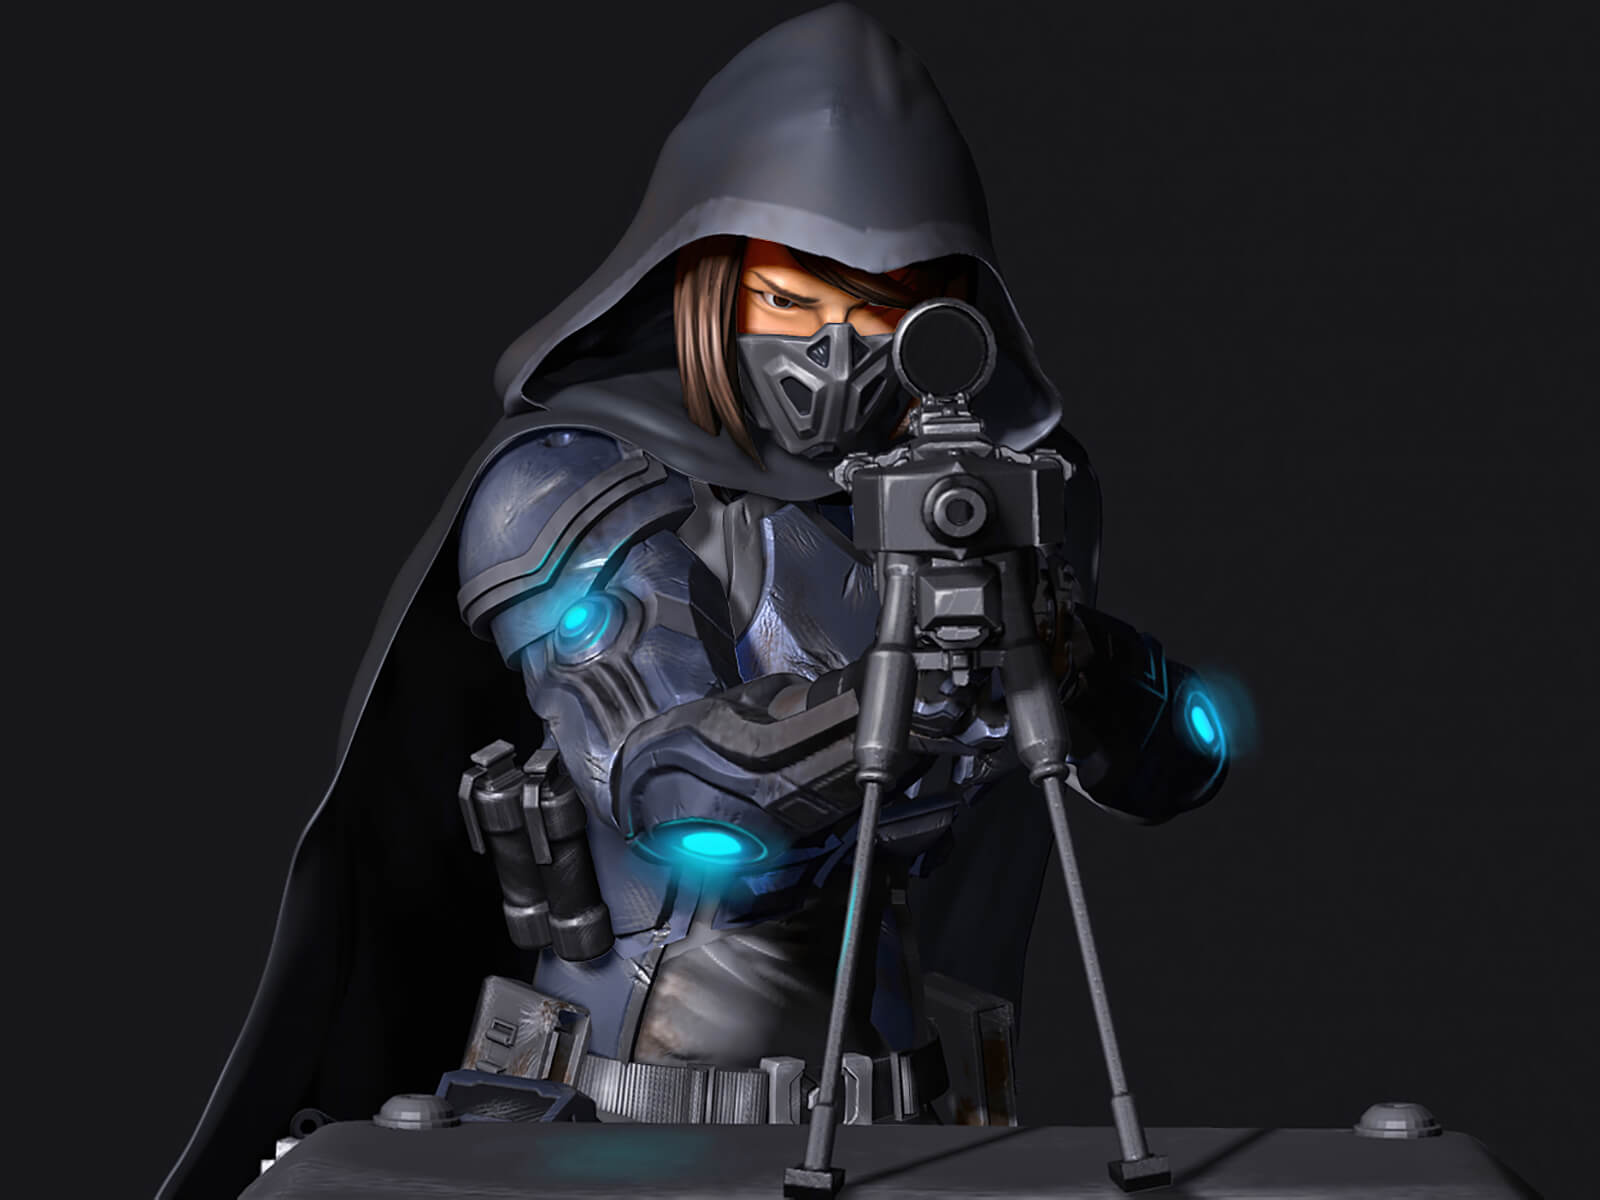 computer-generated 3D model of a sniper character taking aim at the viewer